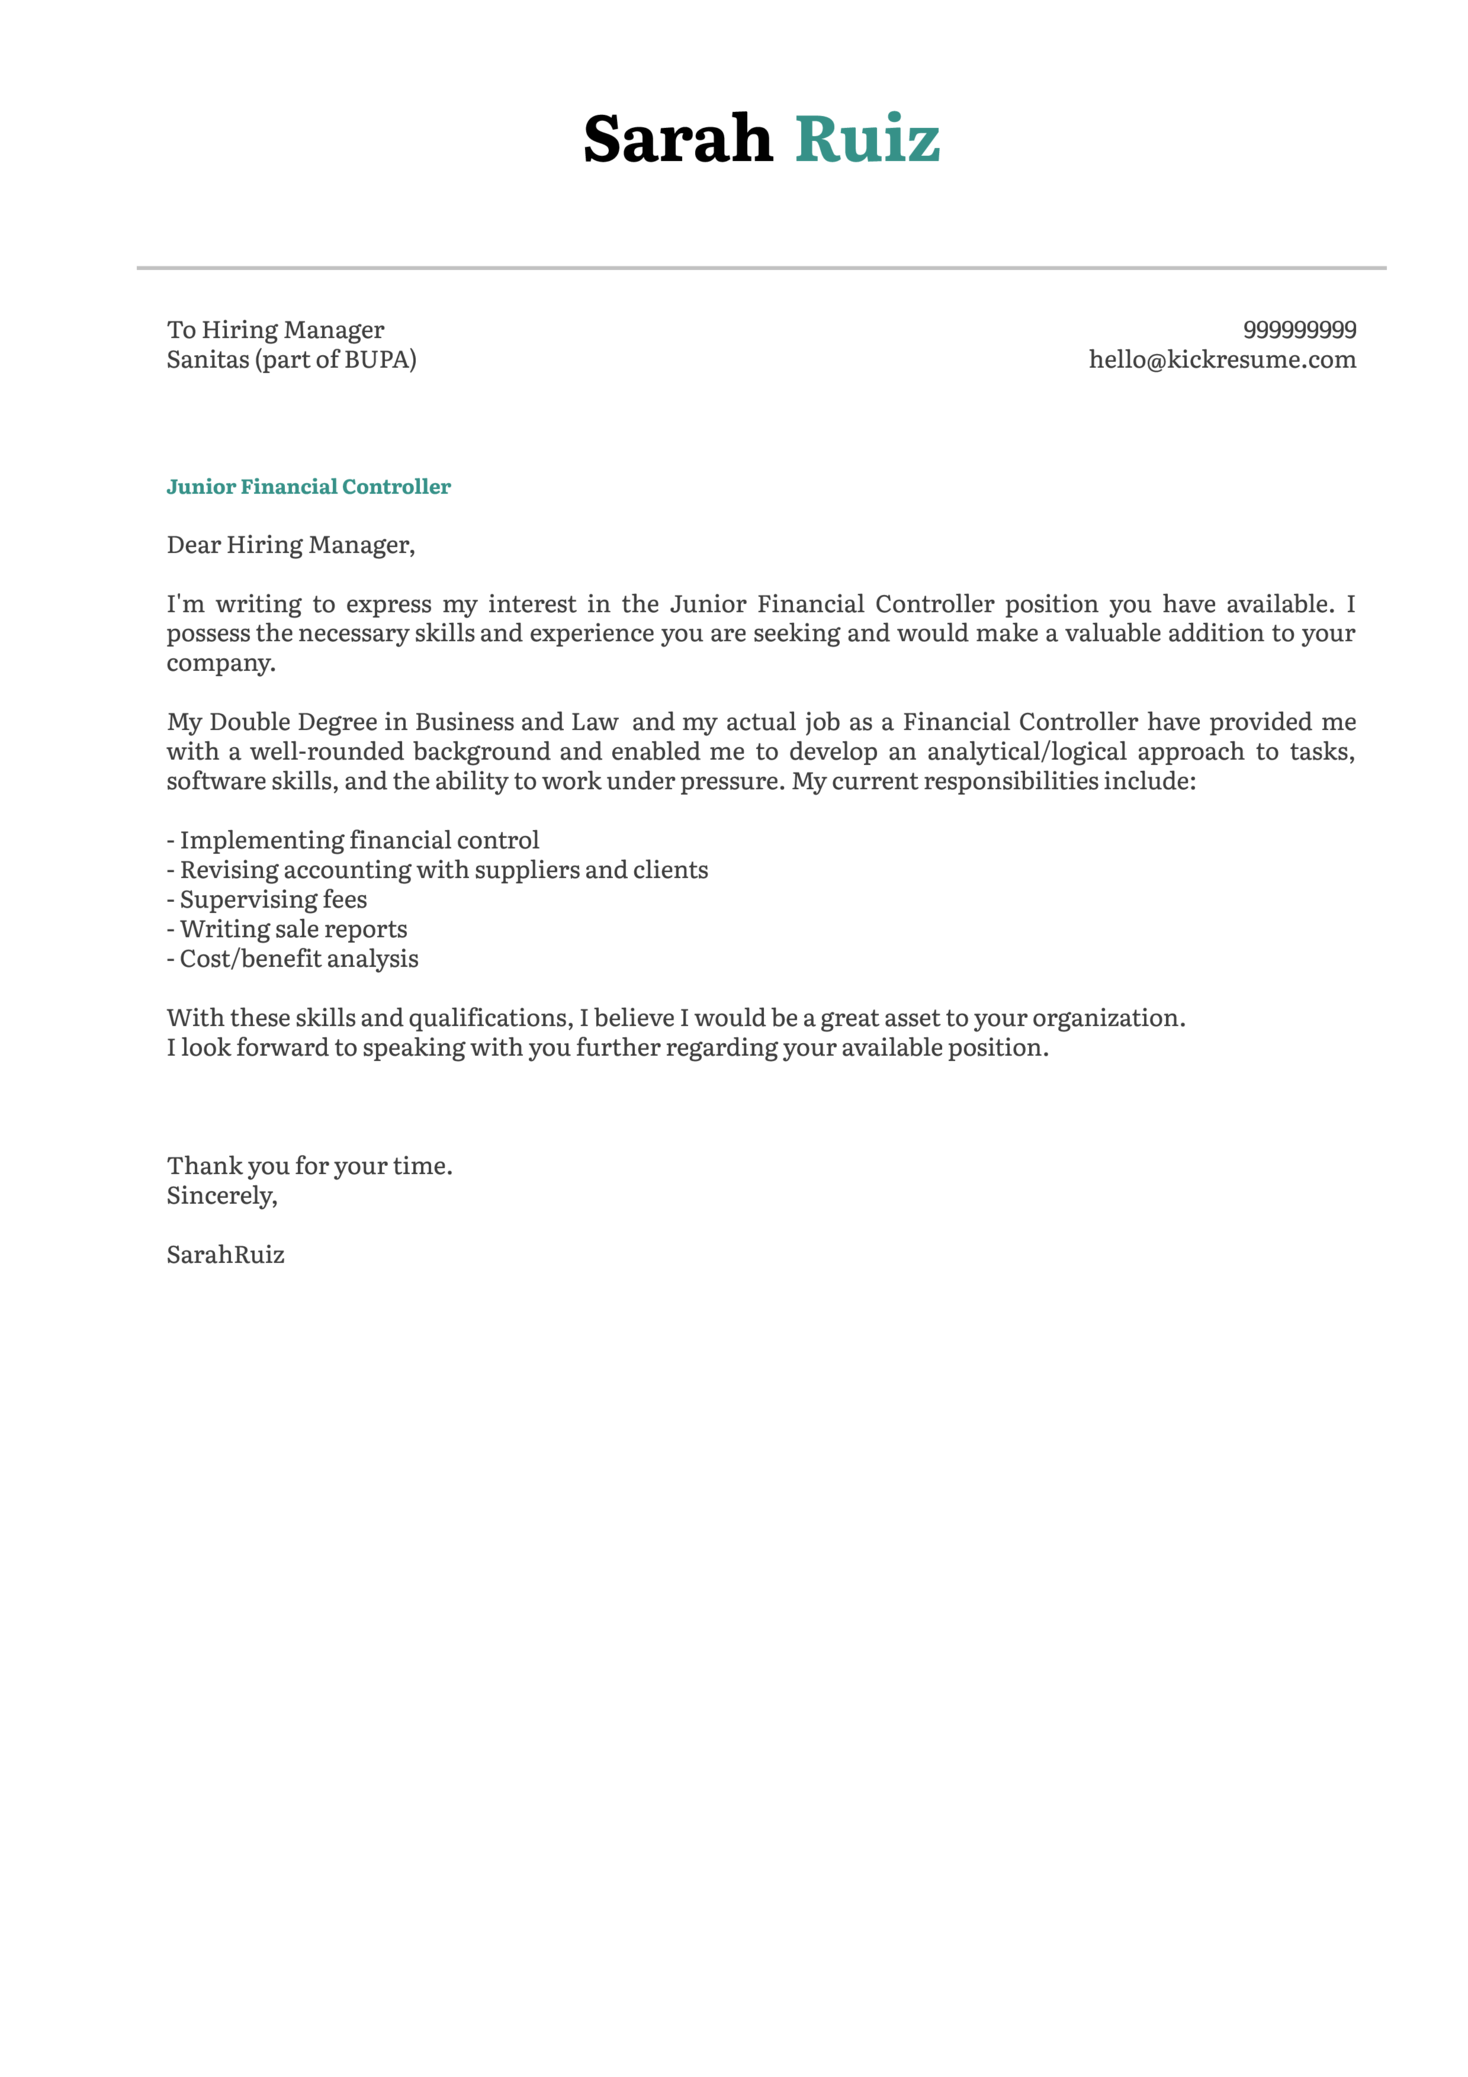 cover letter examples by real people  junior financial controller cover letter at bupa